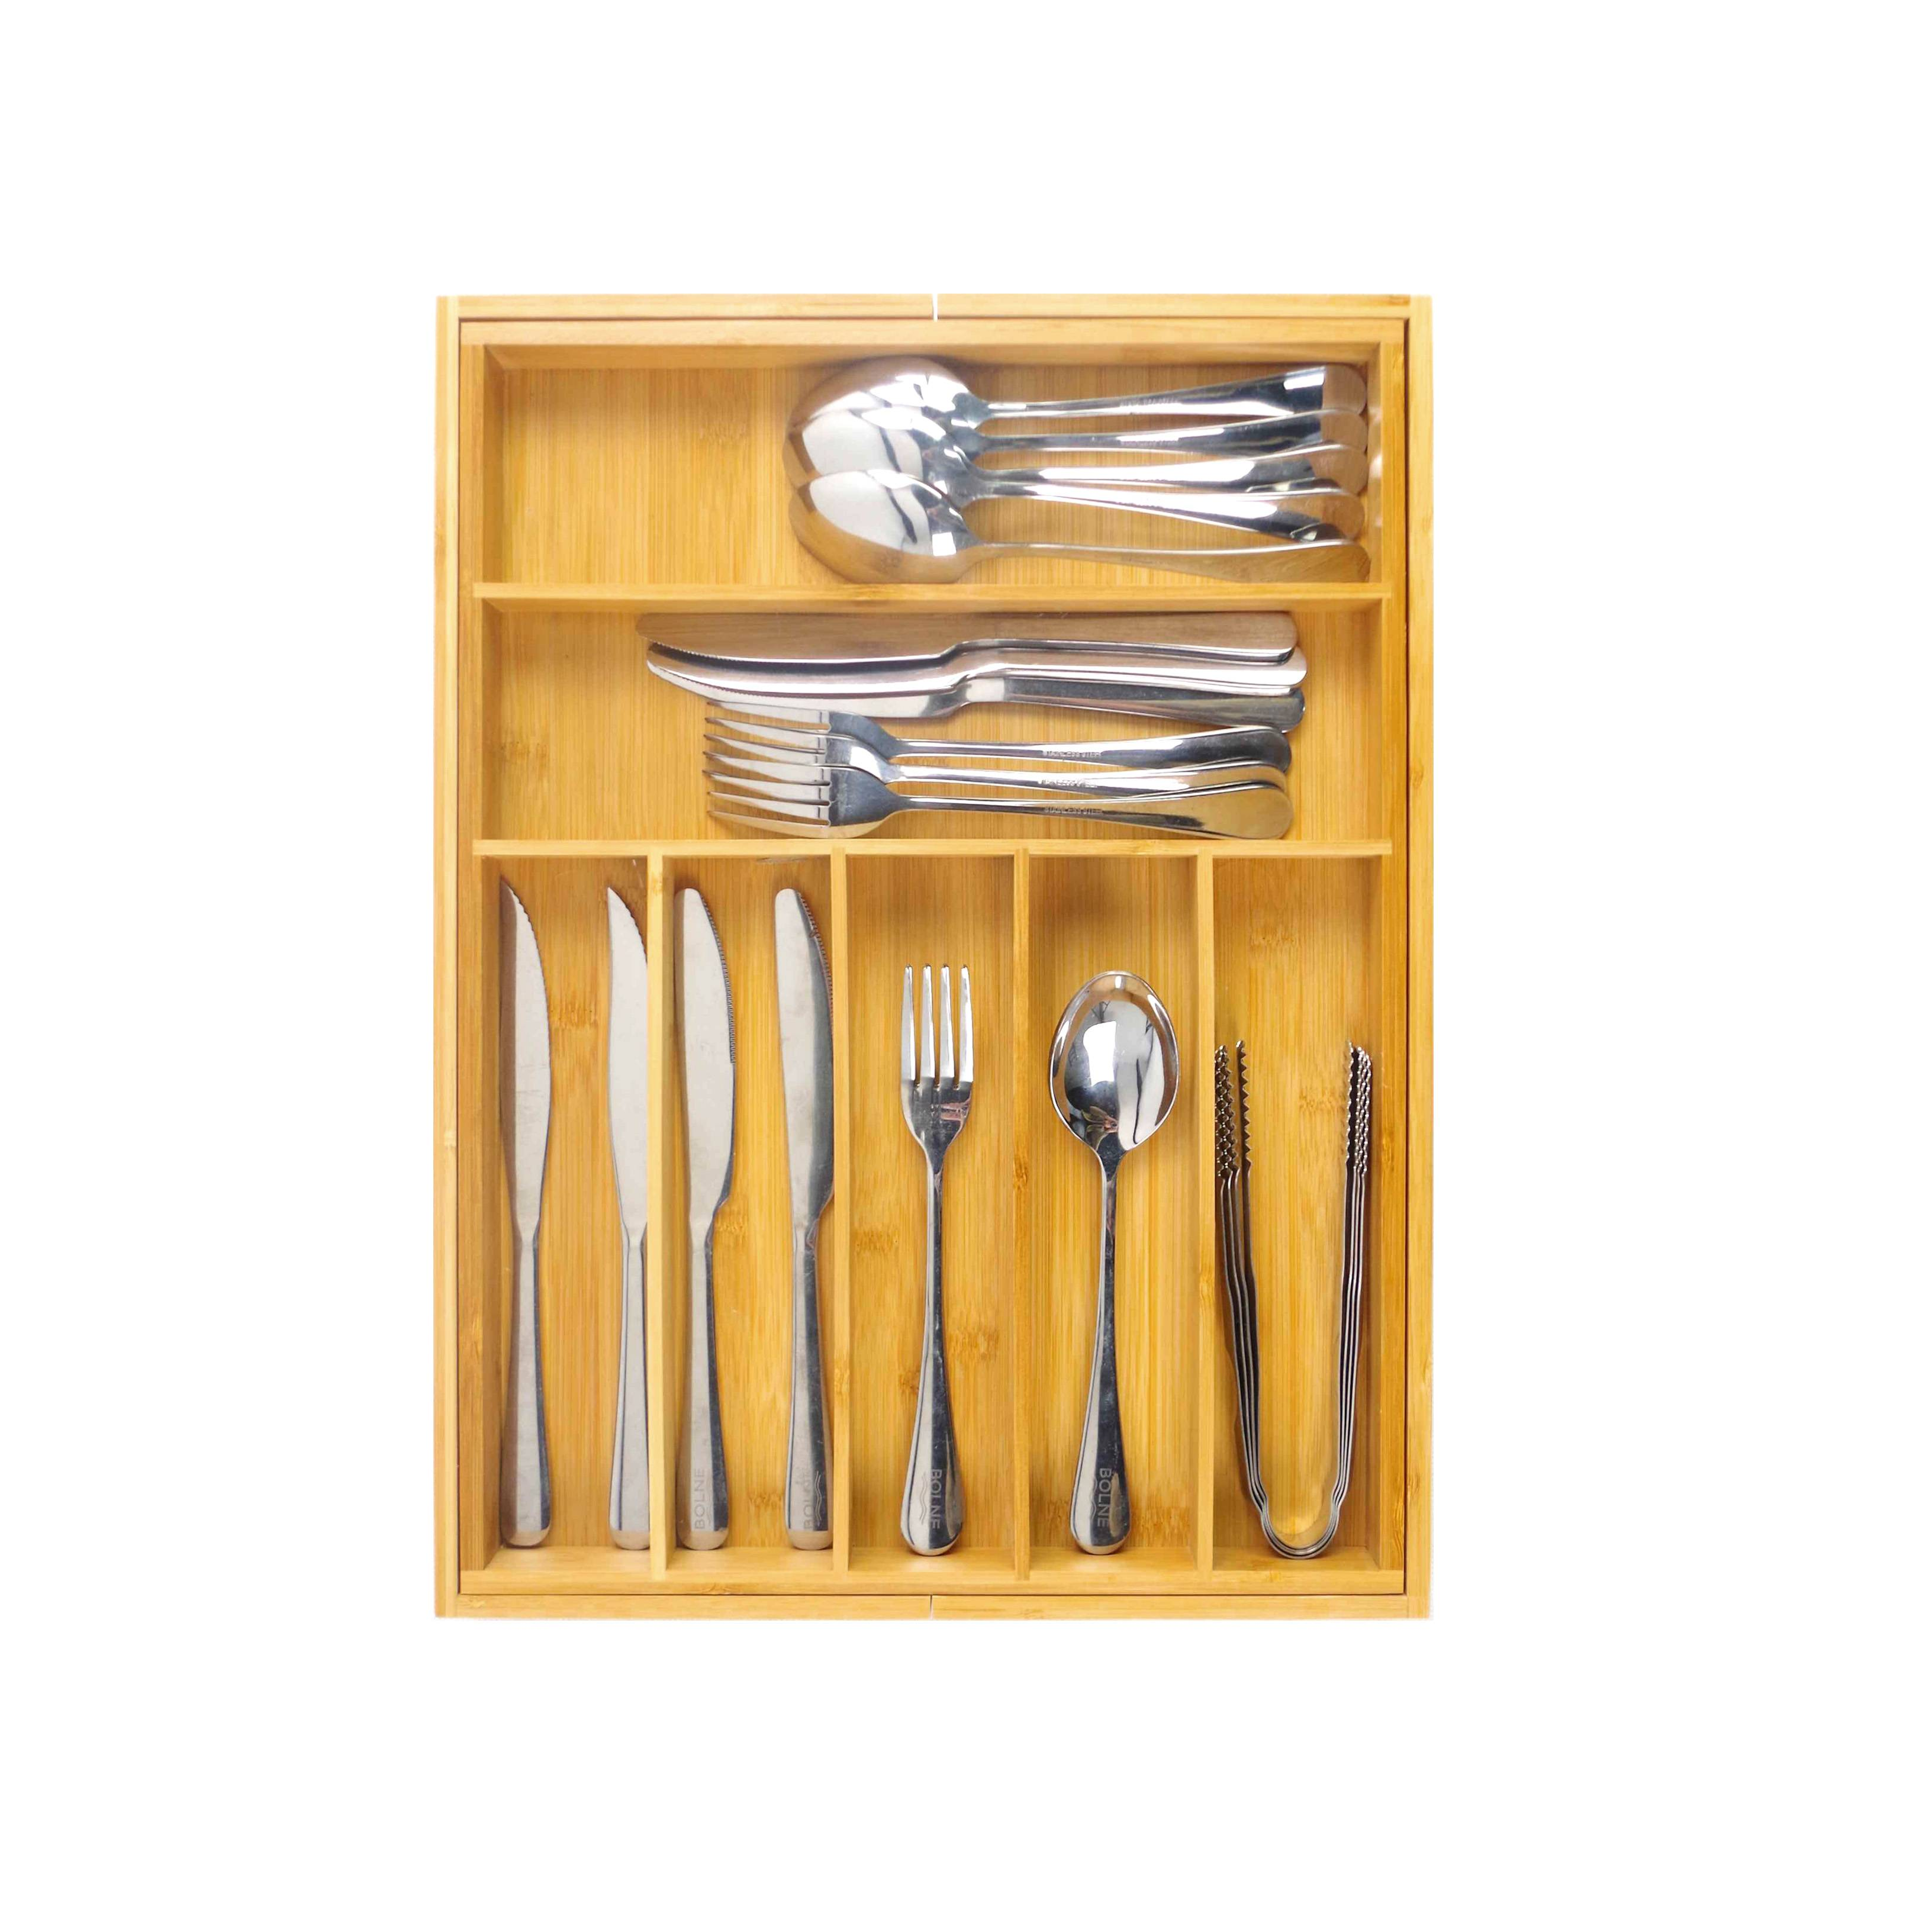 Free sample for China Cheap Price Bamboo Kitchen Drawer Organizer with 7-9 Compartments, Deep Silverware Organizer, Utensil Organizer, Silverware Tray Featured Image